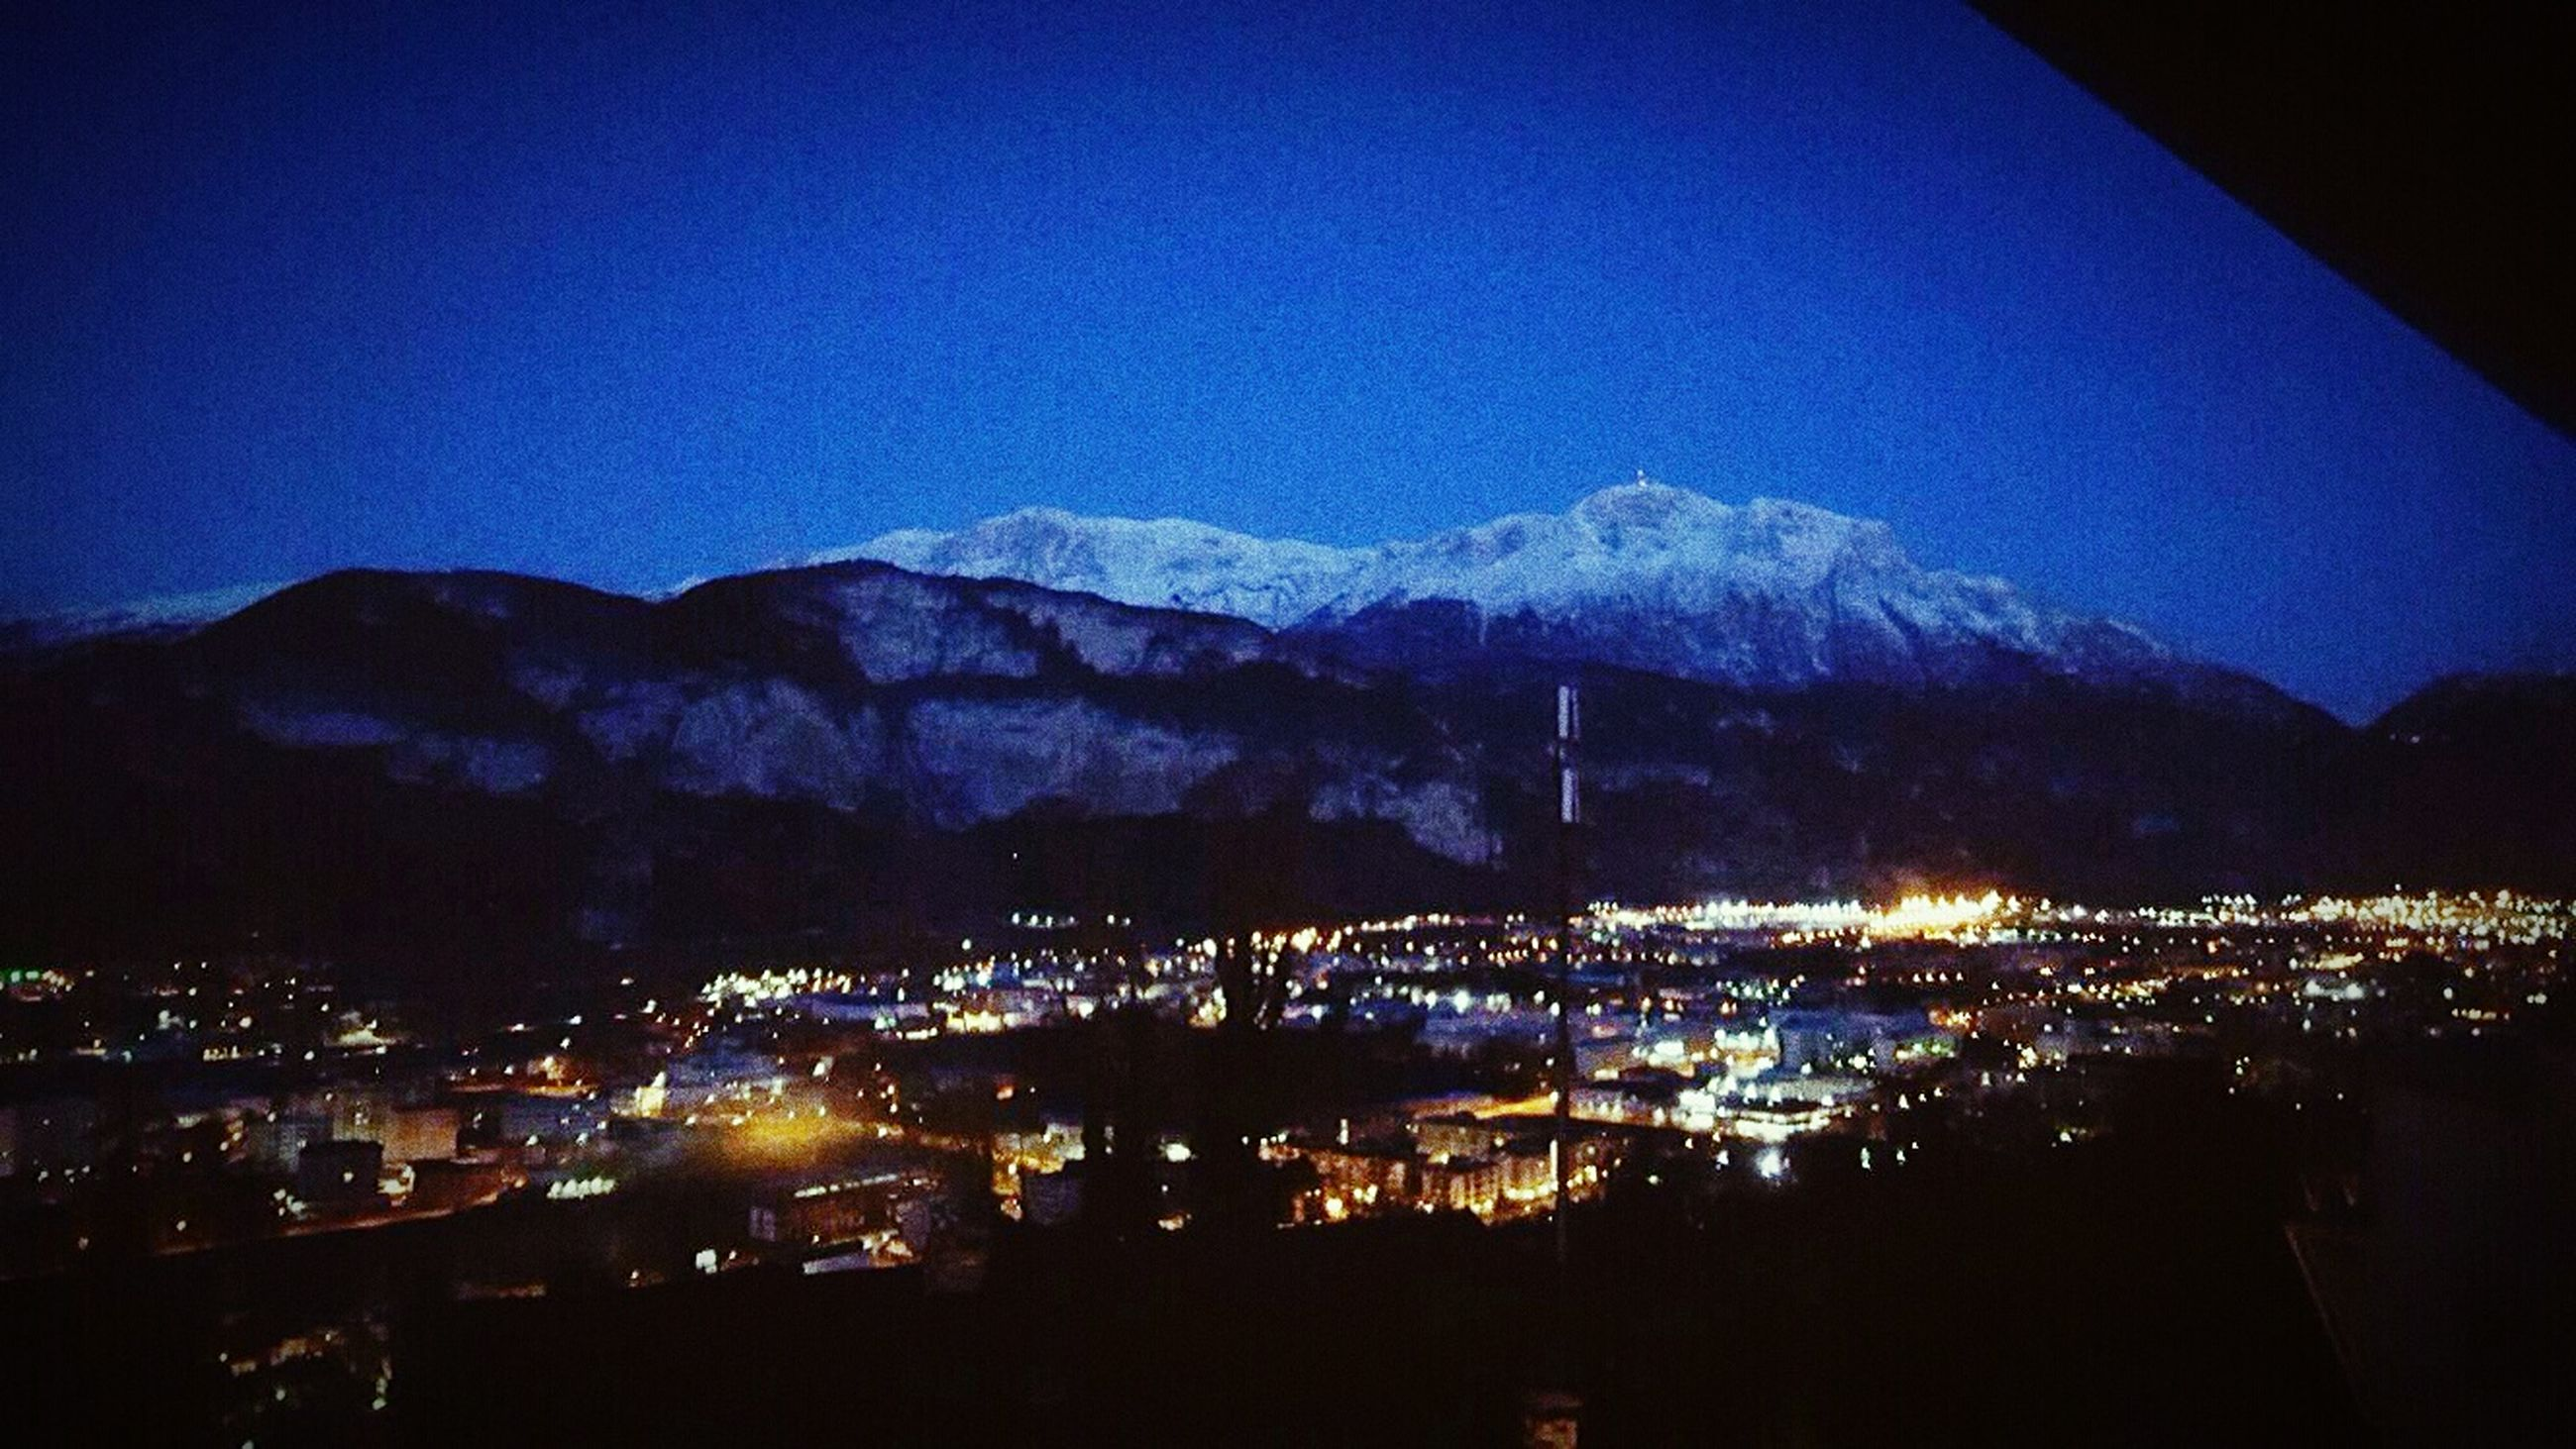 night, illuminated, blue, mountain, sky, reflection, dusk, mountain range, no people, silhouette, nature, built structure, architecture, outdoors, scenics, beauty in nature, city, building exterior, tranquility, luminosity, water, cityscape